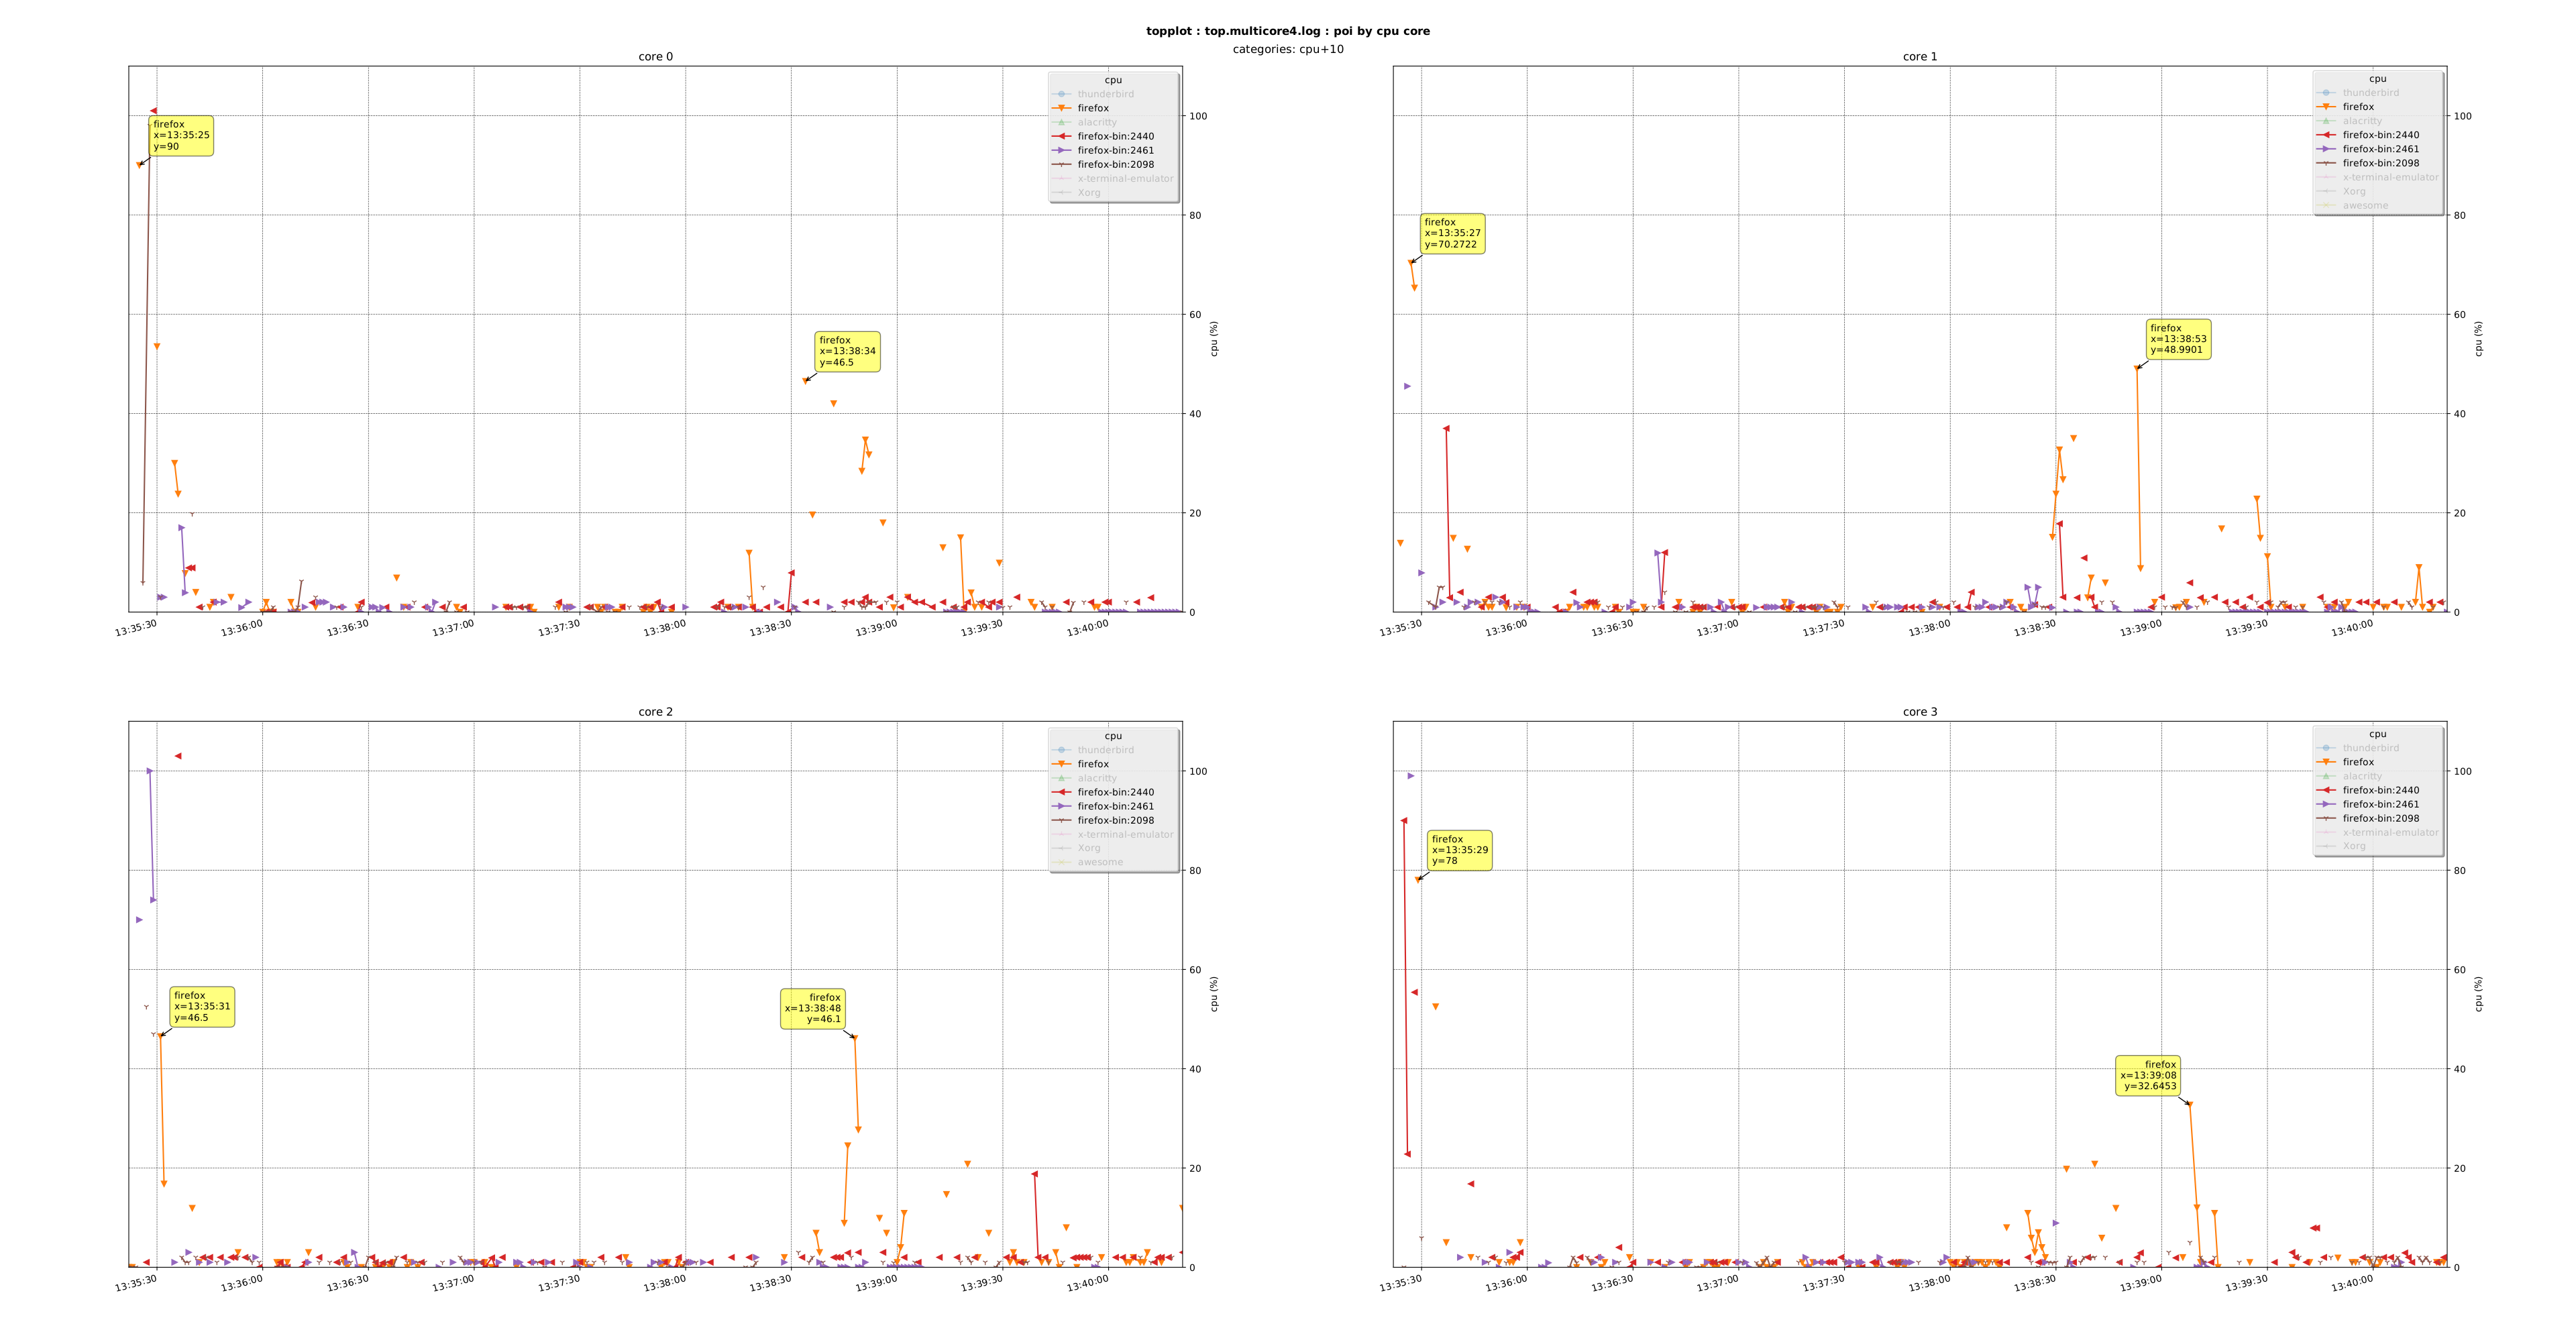 An image of the processes of interest by cpu core graphs appears here on the webpage